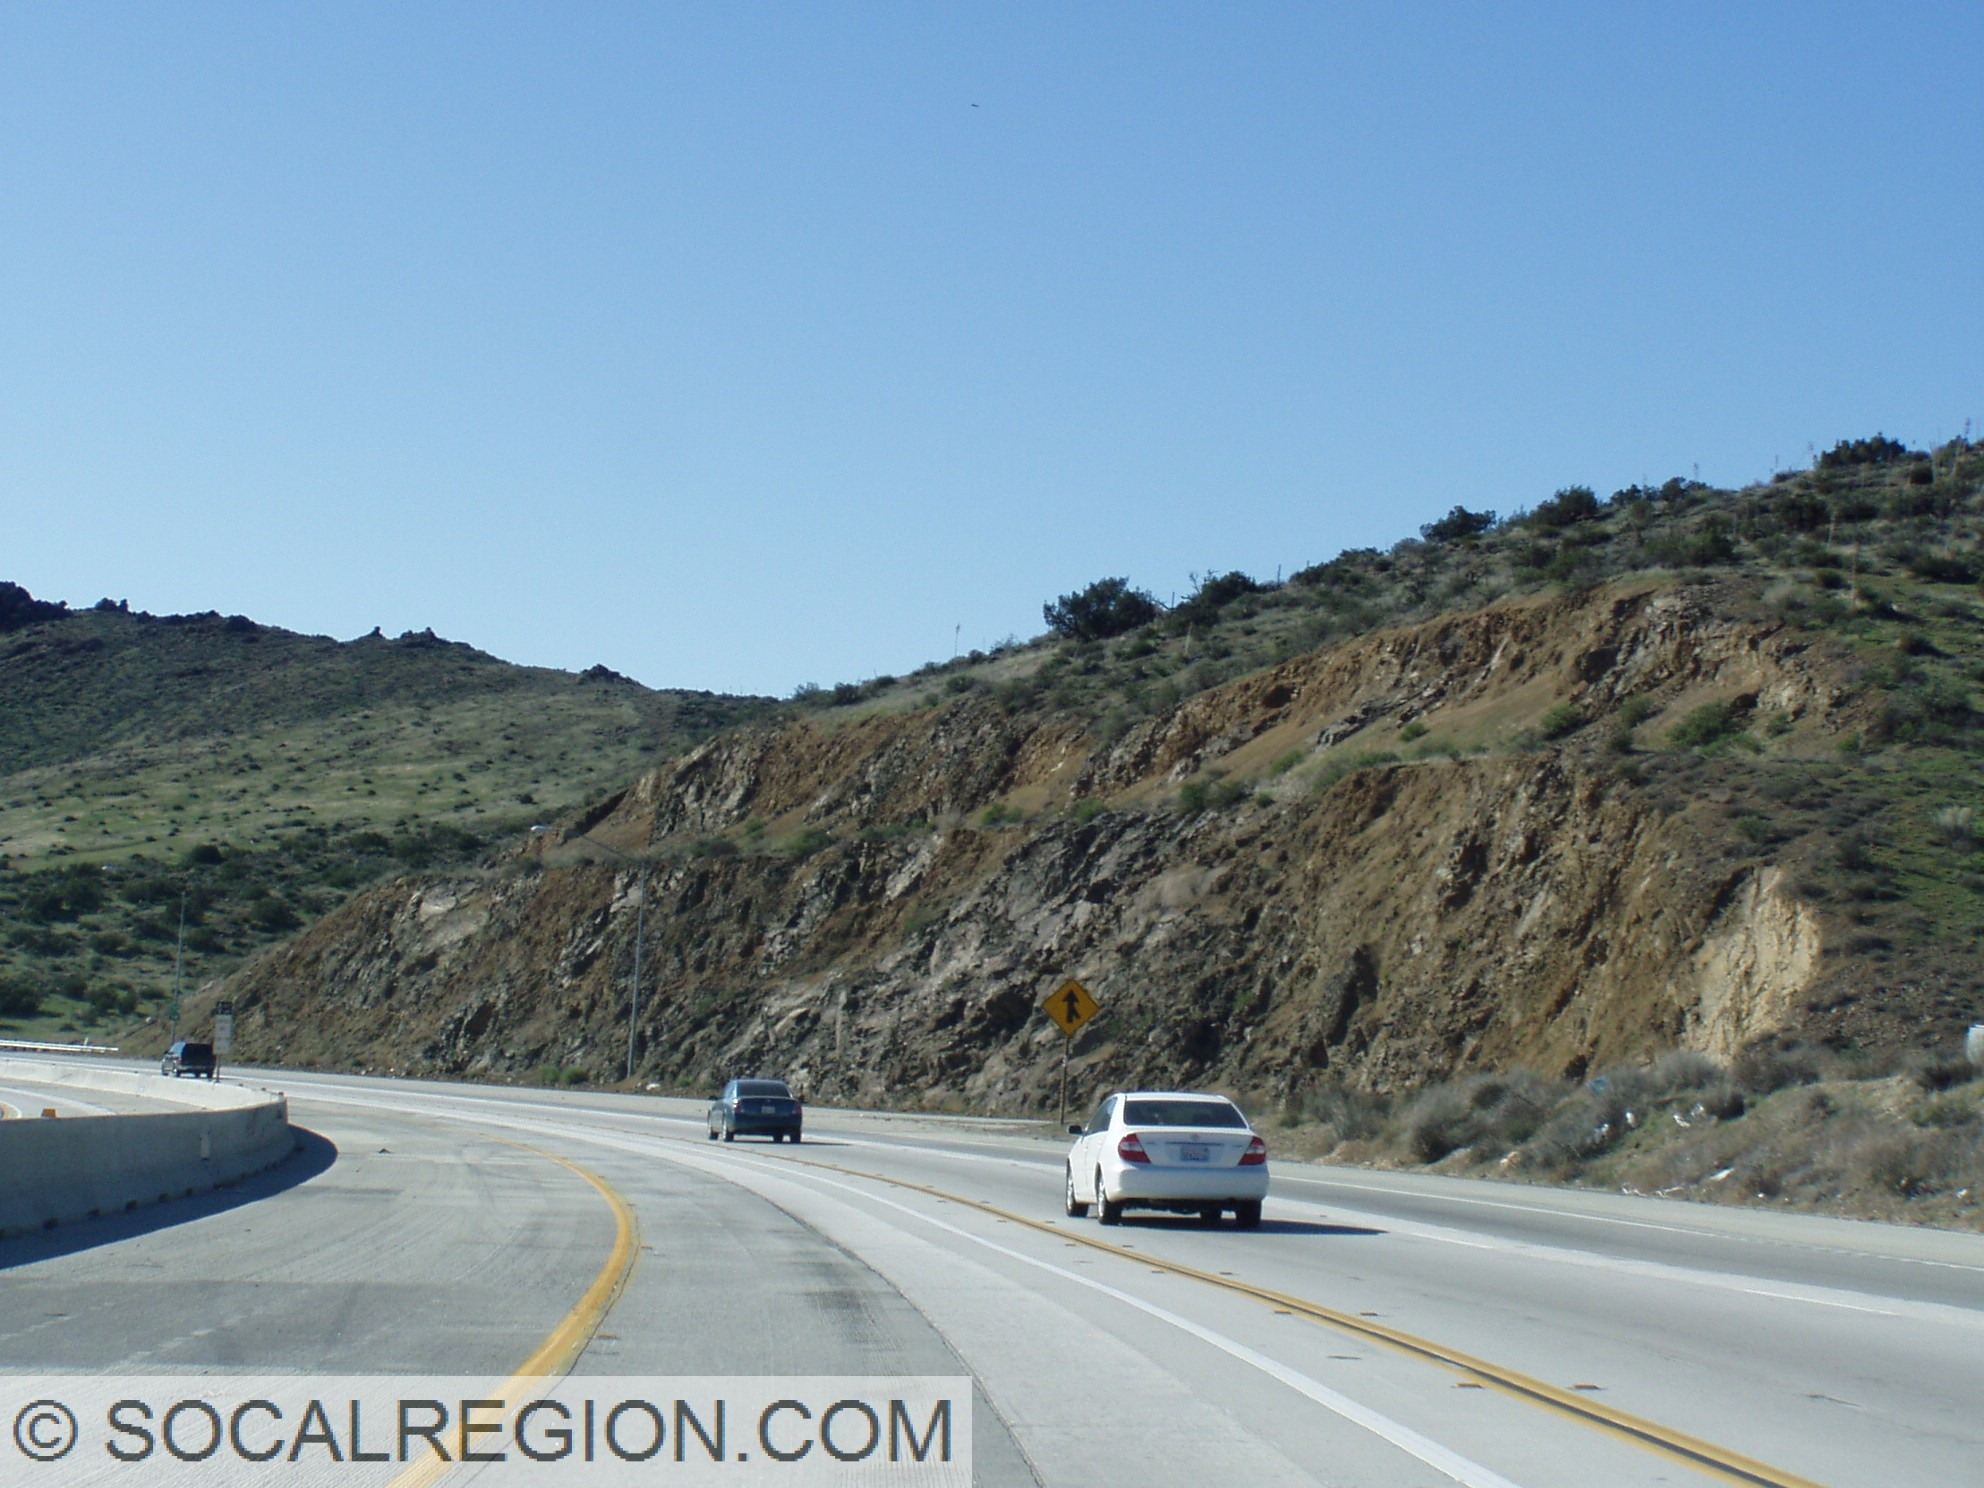 Los Angeles Geology \u2013 Volcanoes | Southern California Regional ...